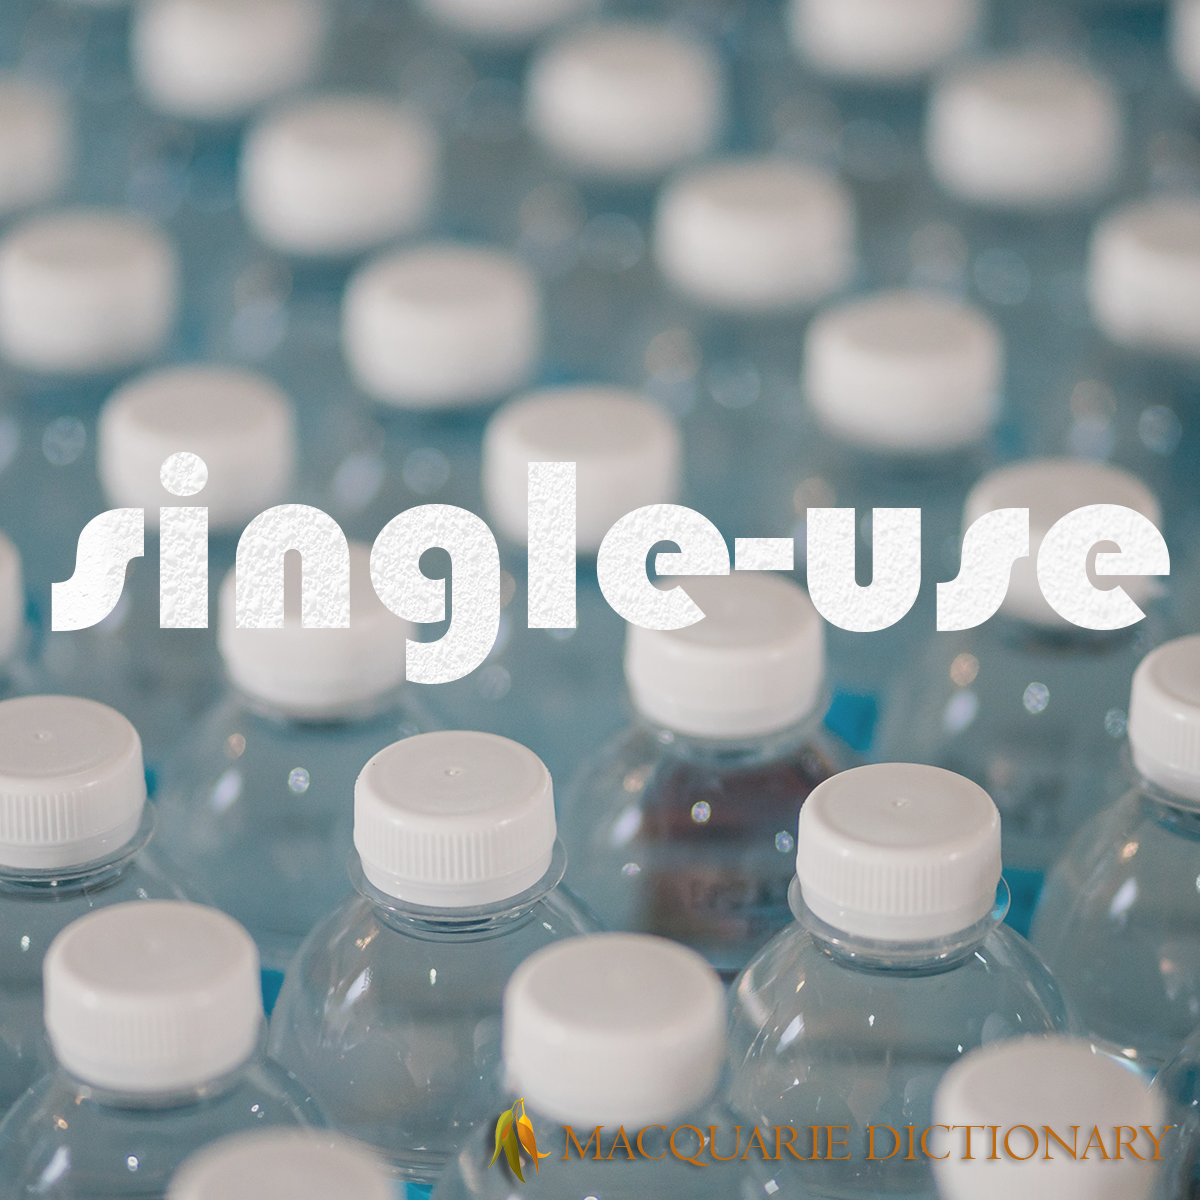 Image of Macquarie Dictionary Word of the Year - single-use - intended for disposal after only one use.